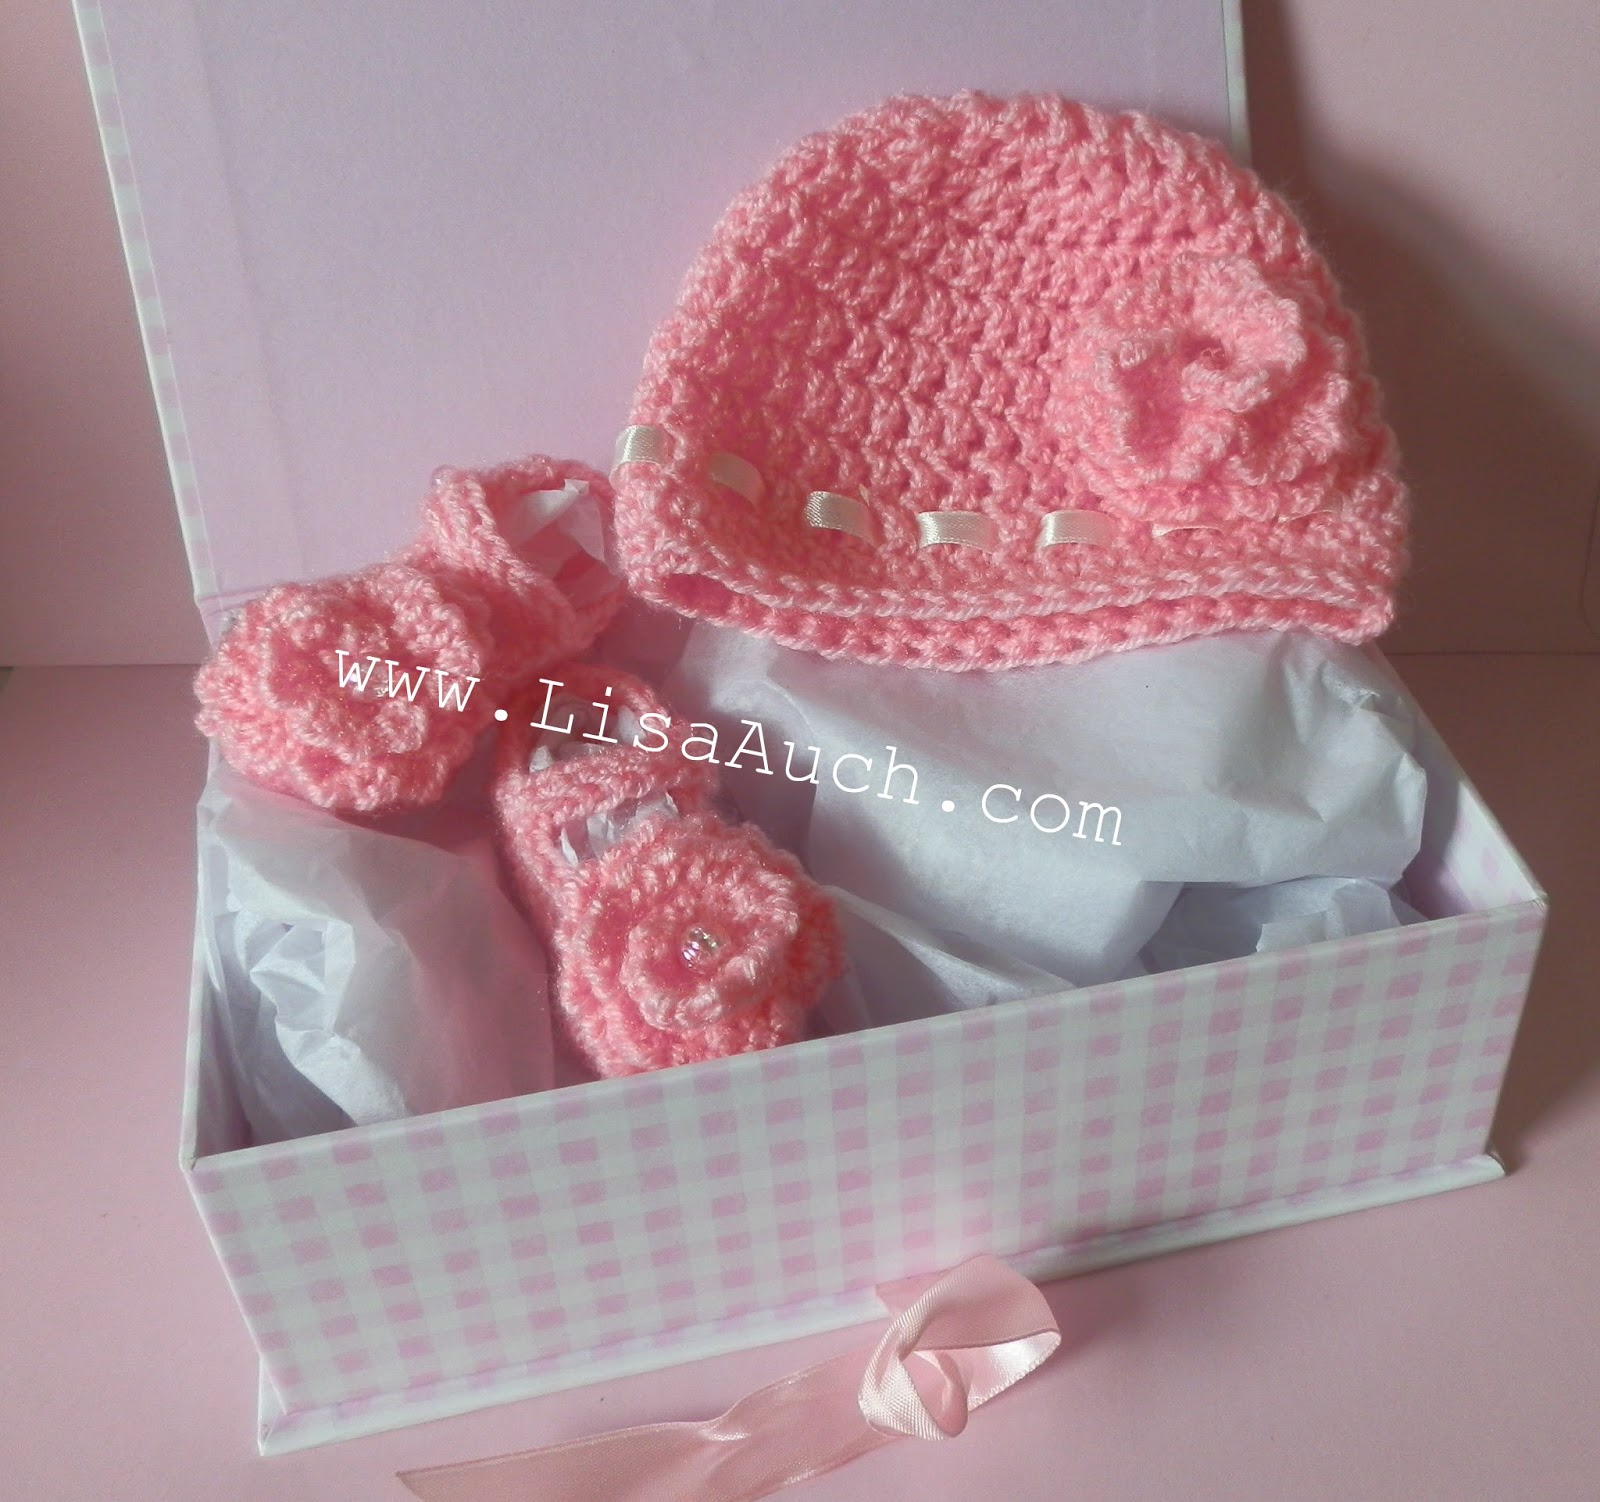 Crochet For Baby : FREE crochet Pattern for Baby Crochet Hat and; Cute Baby Booties, Mary ...